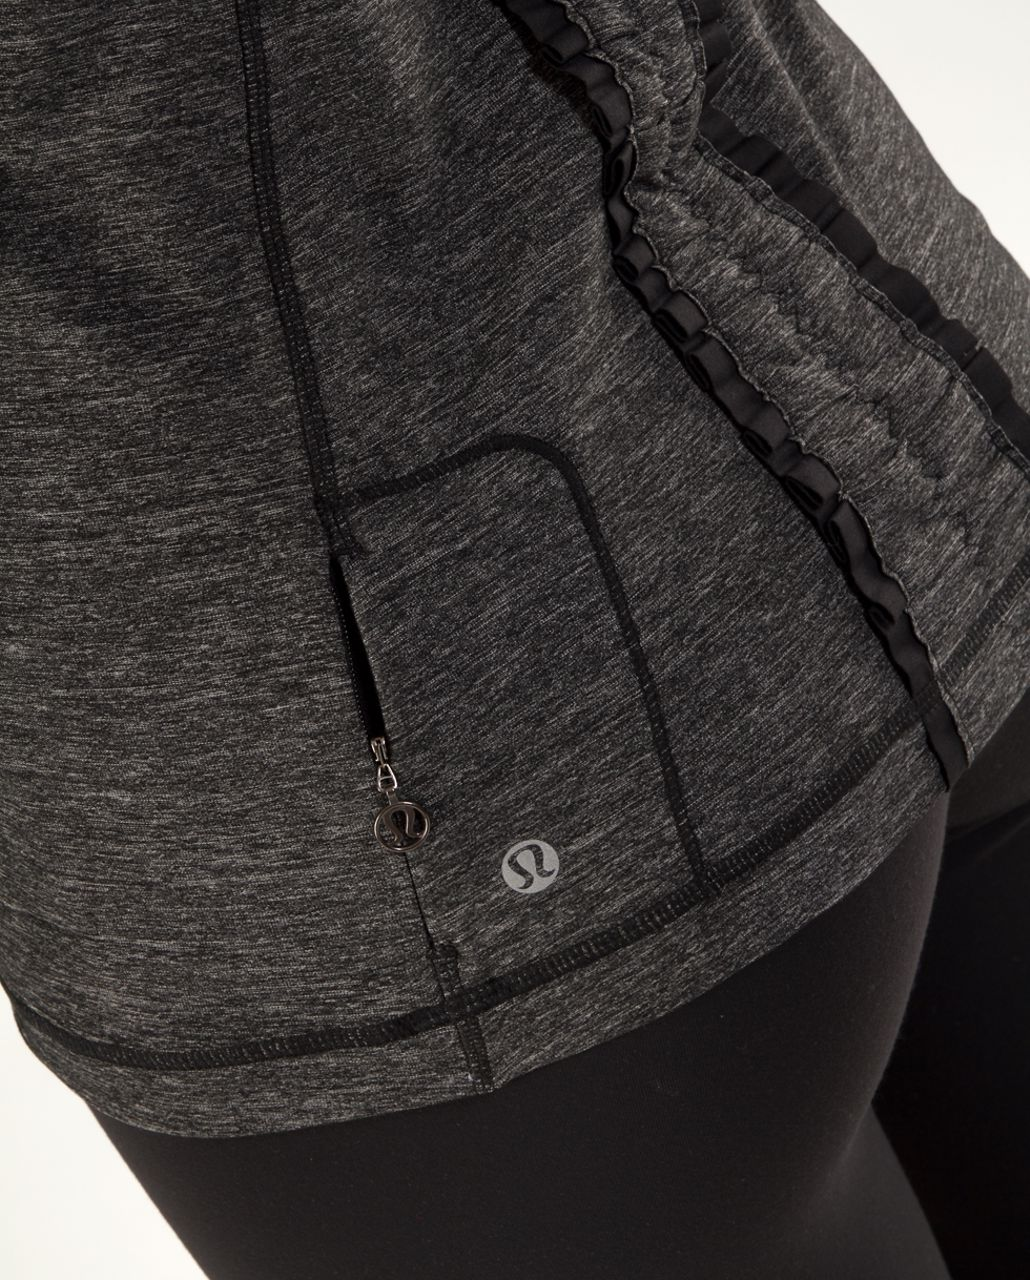 Lululemon Run Free Tank - Heathered Black